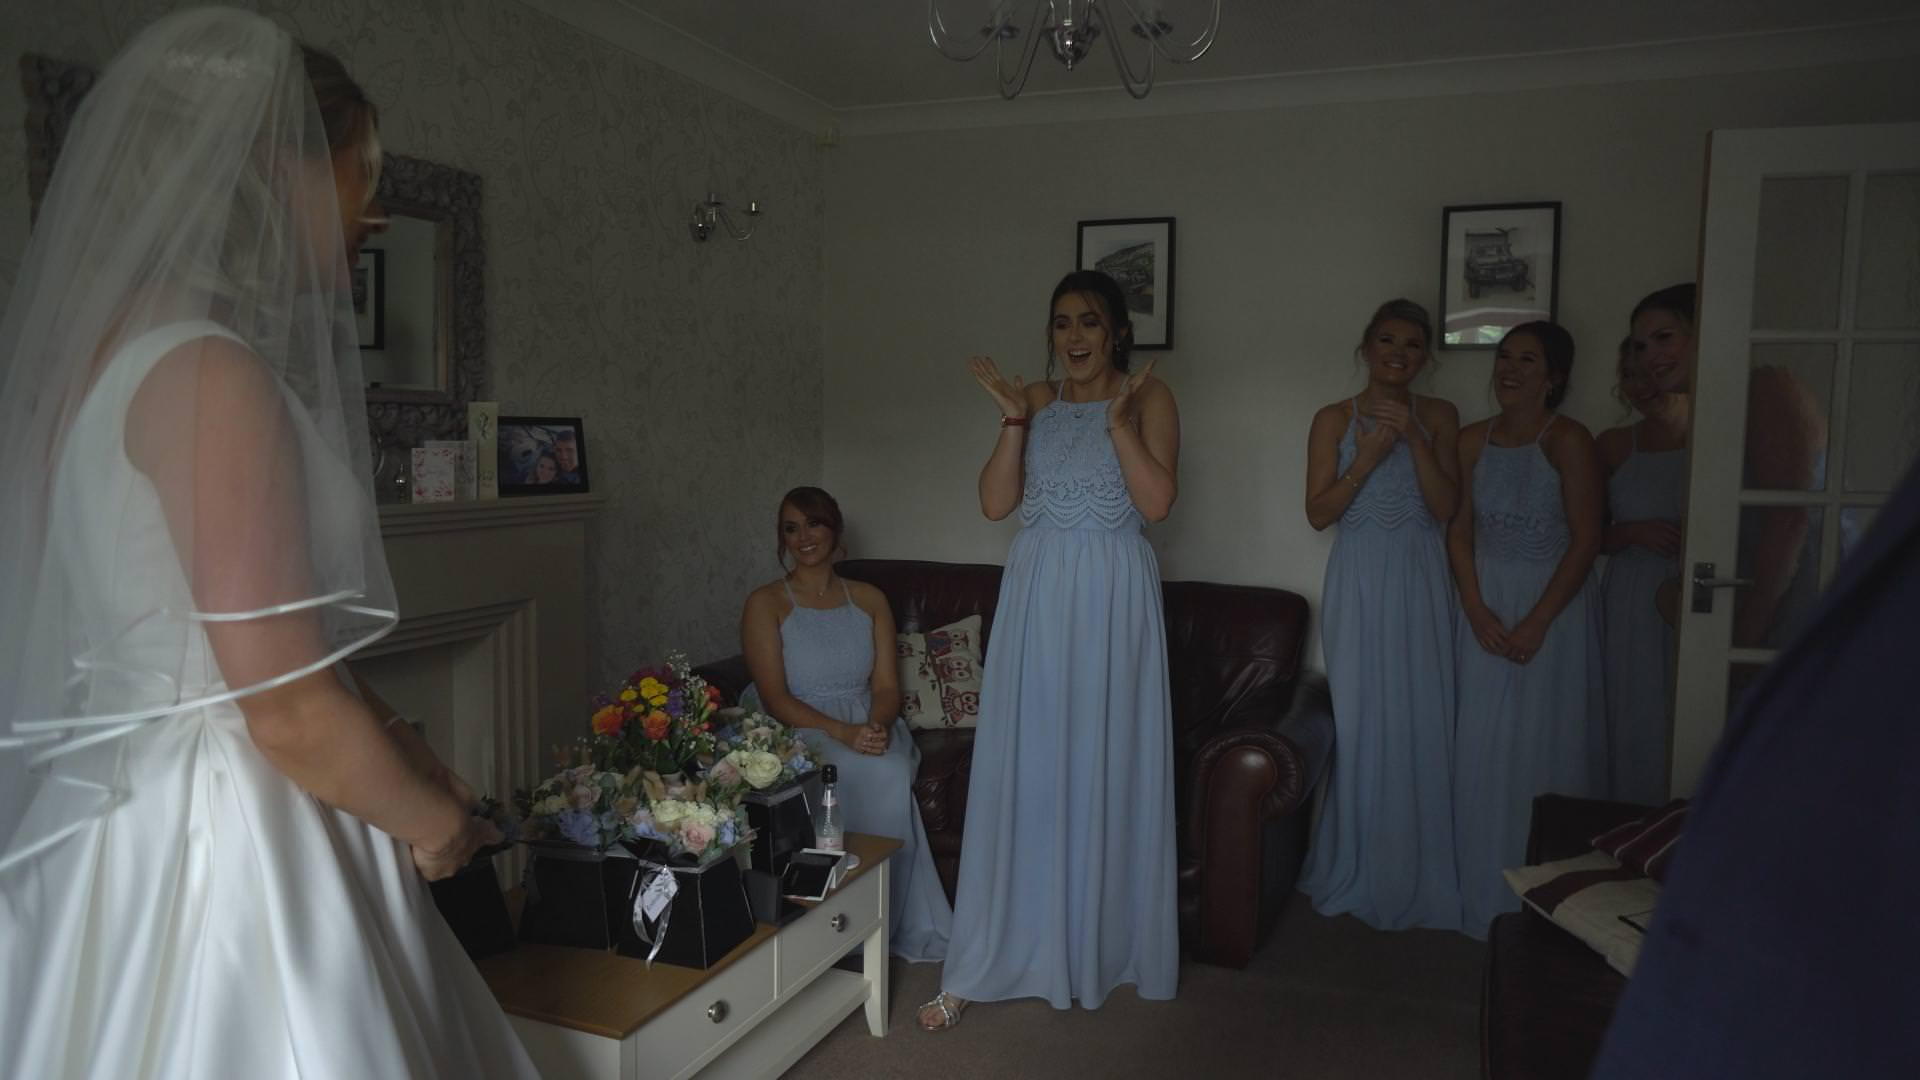 bridesmaids wearing baby blue dresses react to seeing the bride for the first time